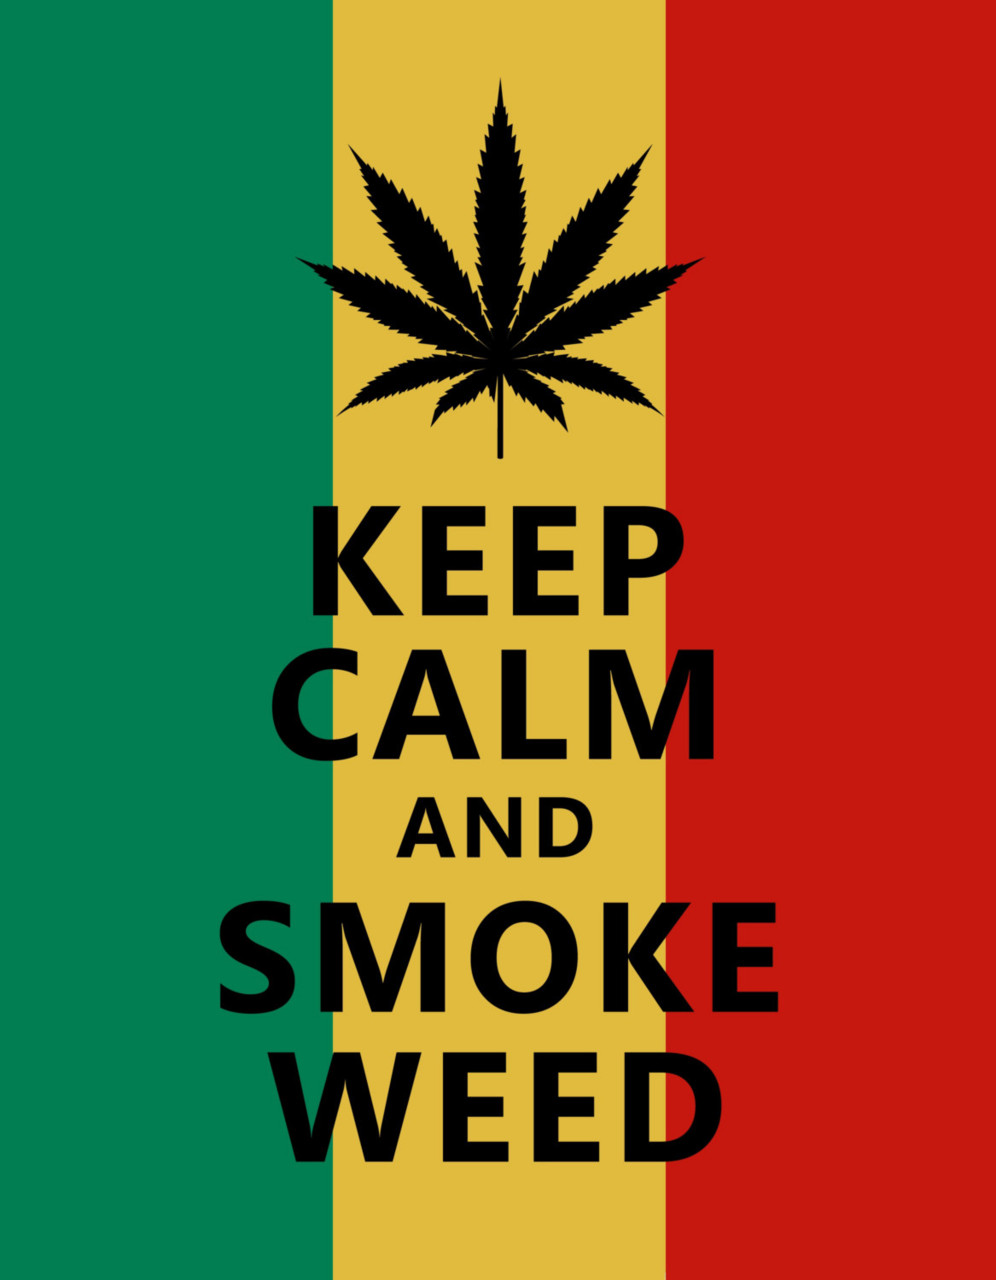 17 Best Images About CANNABIS STUFF On Pinterest